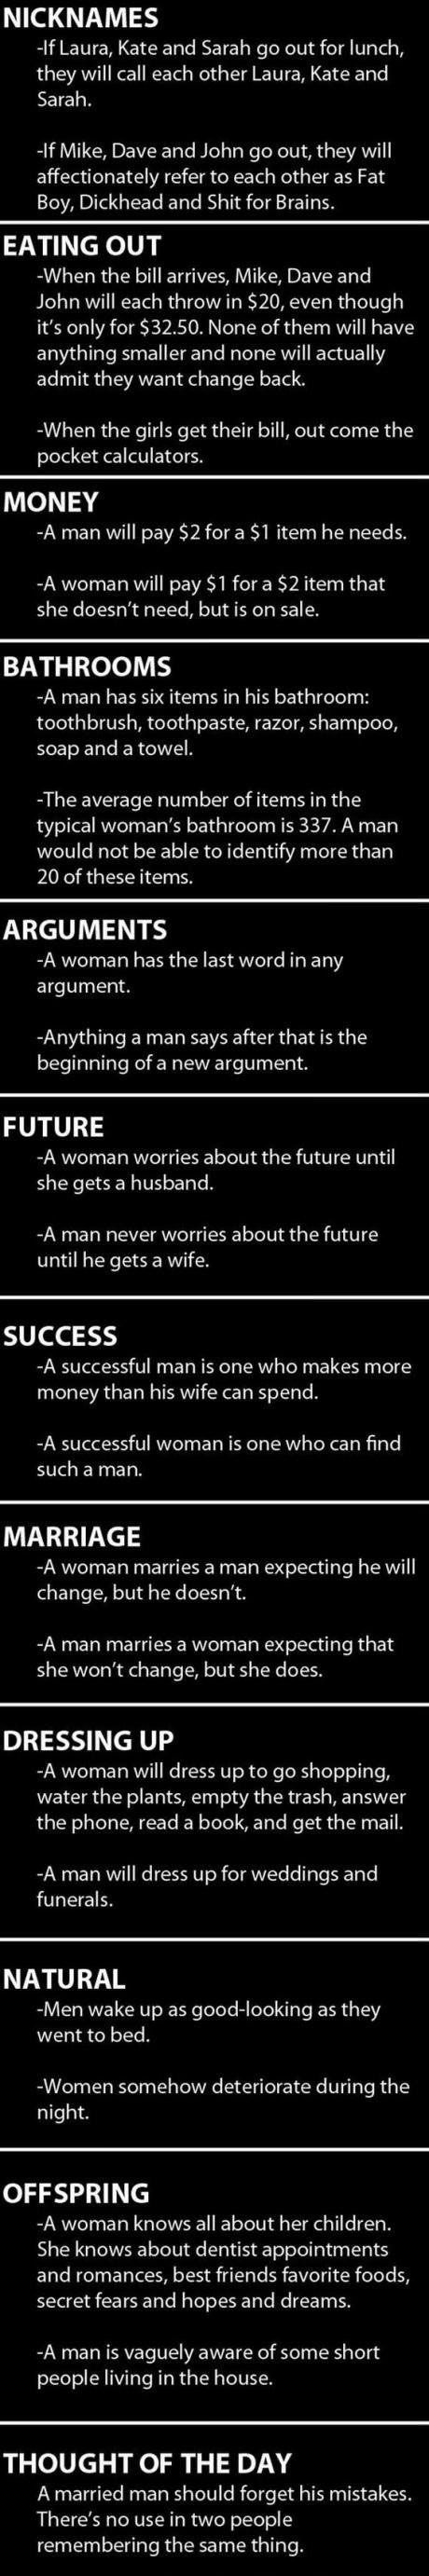 Men vs Women, part 4